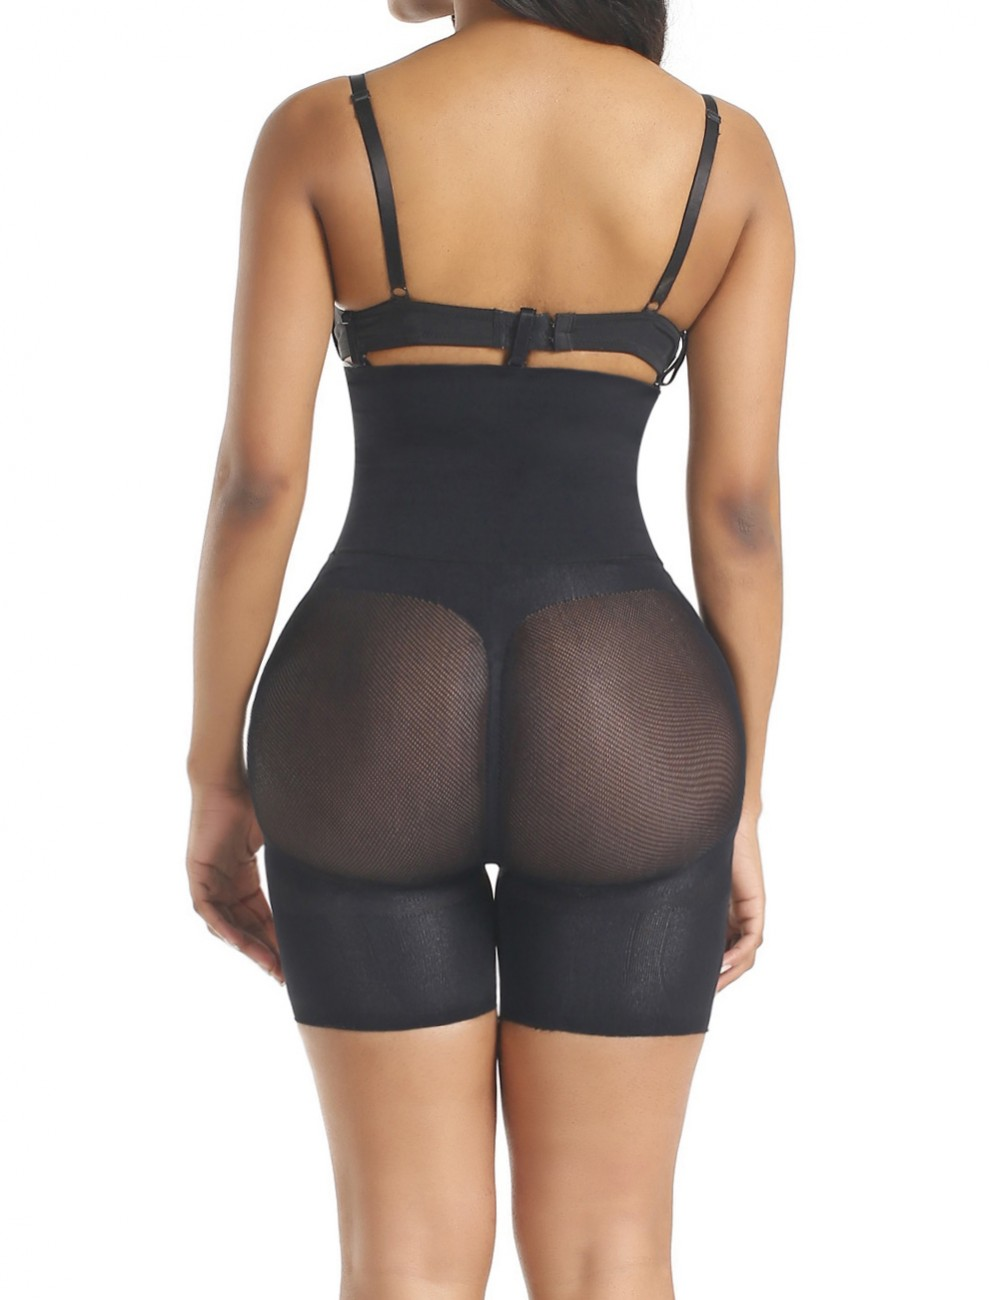 Black High Waist Seamless Butt Lifter Panty Midsection Control